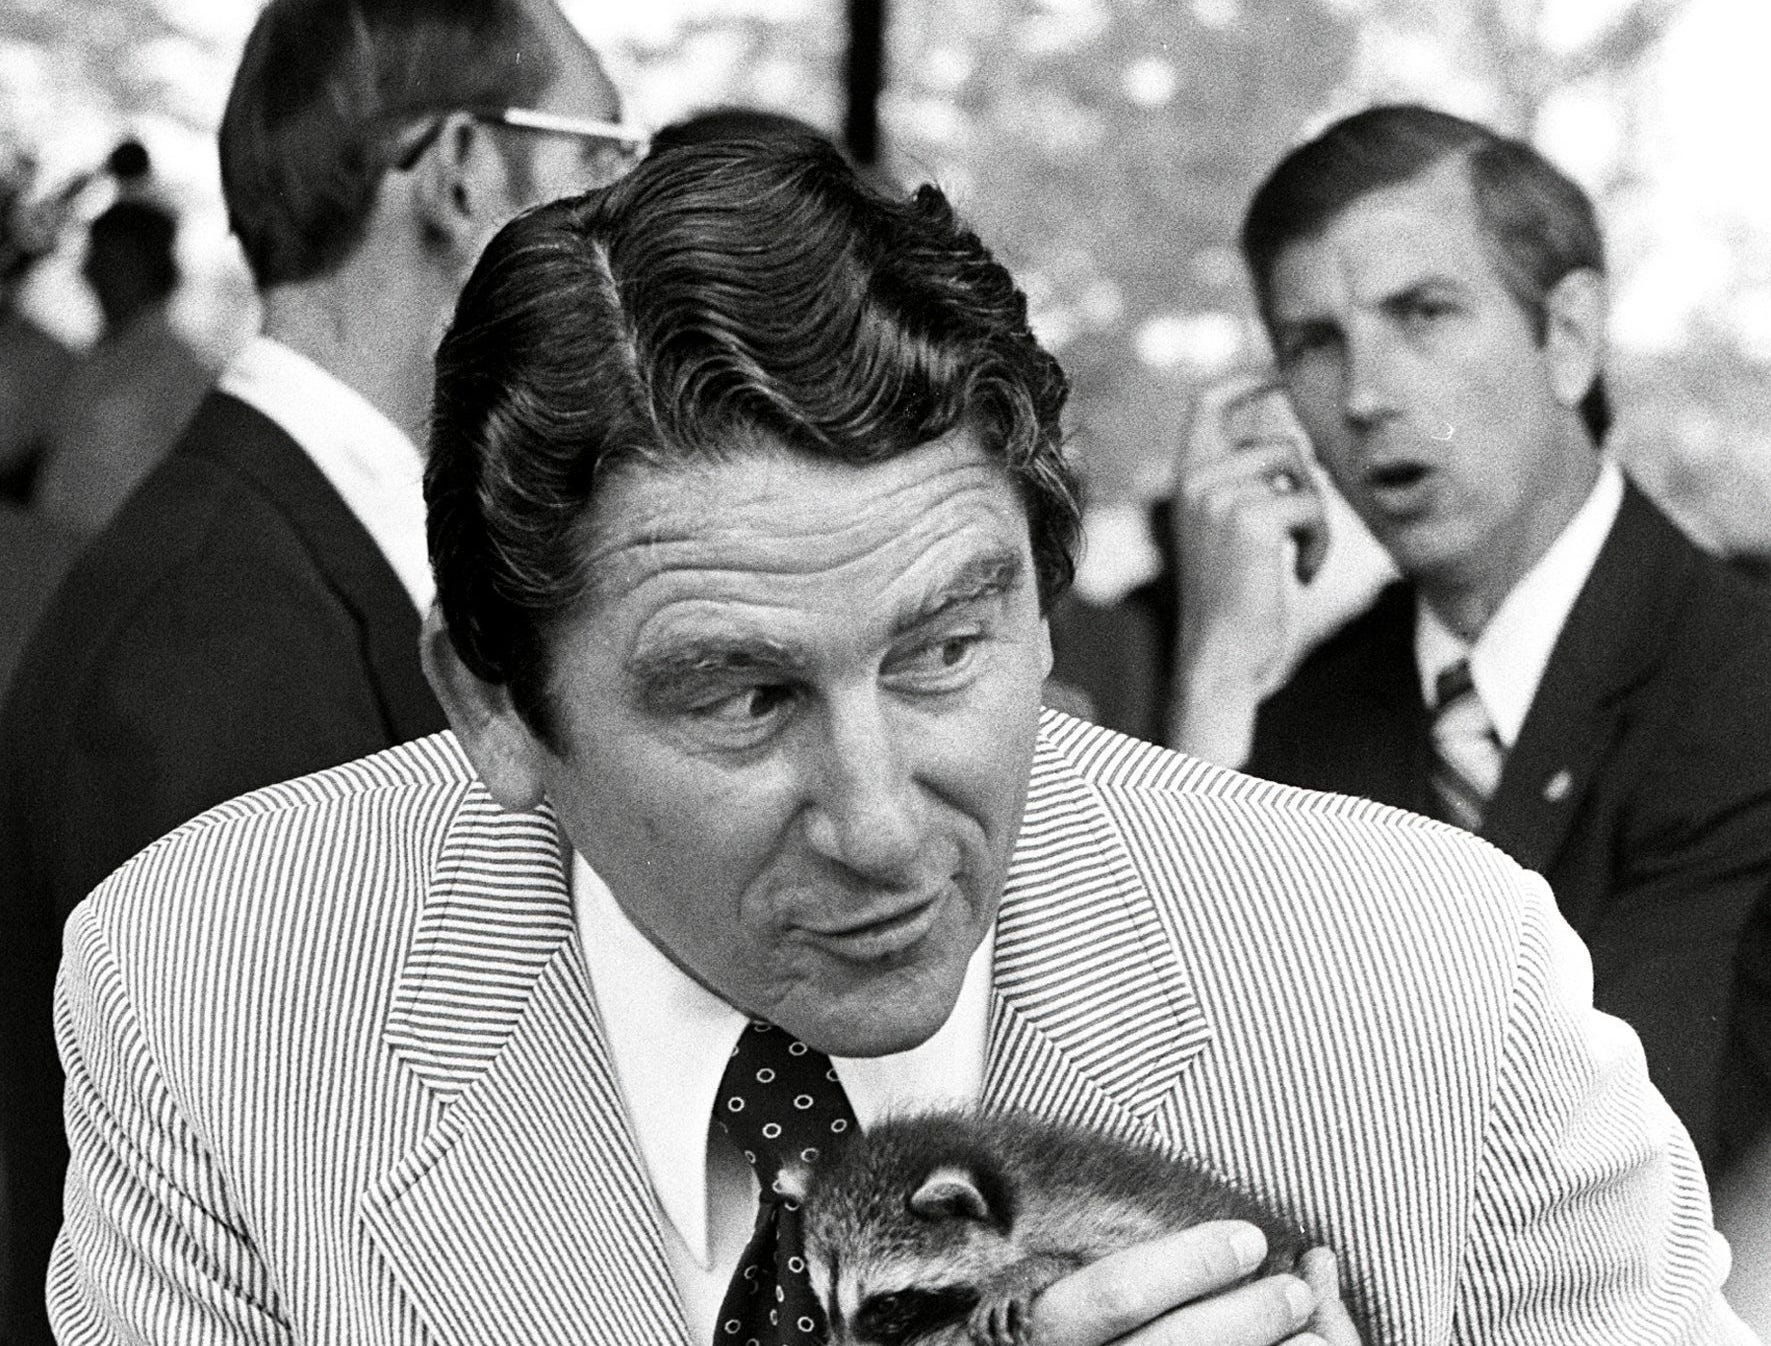 Tennessee Governor Winfield Dunn, with a borrowed raccoon, along with other political leaders from Tennessee and Mississippi attended the beginning work on the northern end of the Tennessee-Tombigbee Waterway at Yellow Creek Port, north of Iuka, MS on 8 Jul 1974.     Work on the southern portion of the $514 million waterway began near Livingston, AL in December 1972.  When the waterway is completed, possibly in 1981,it will provide a navigable link between the Tennessee River and the Gulf of Mexico.